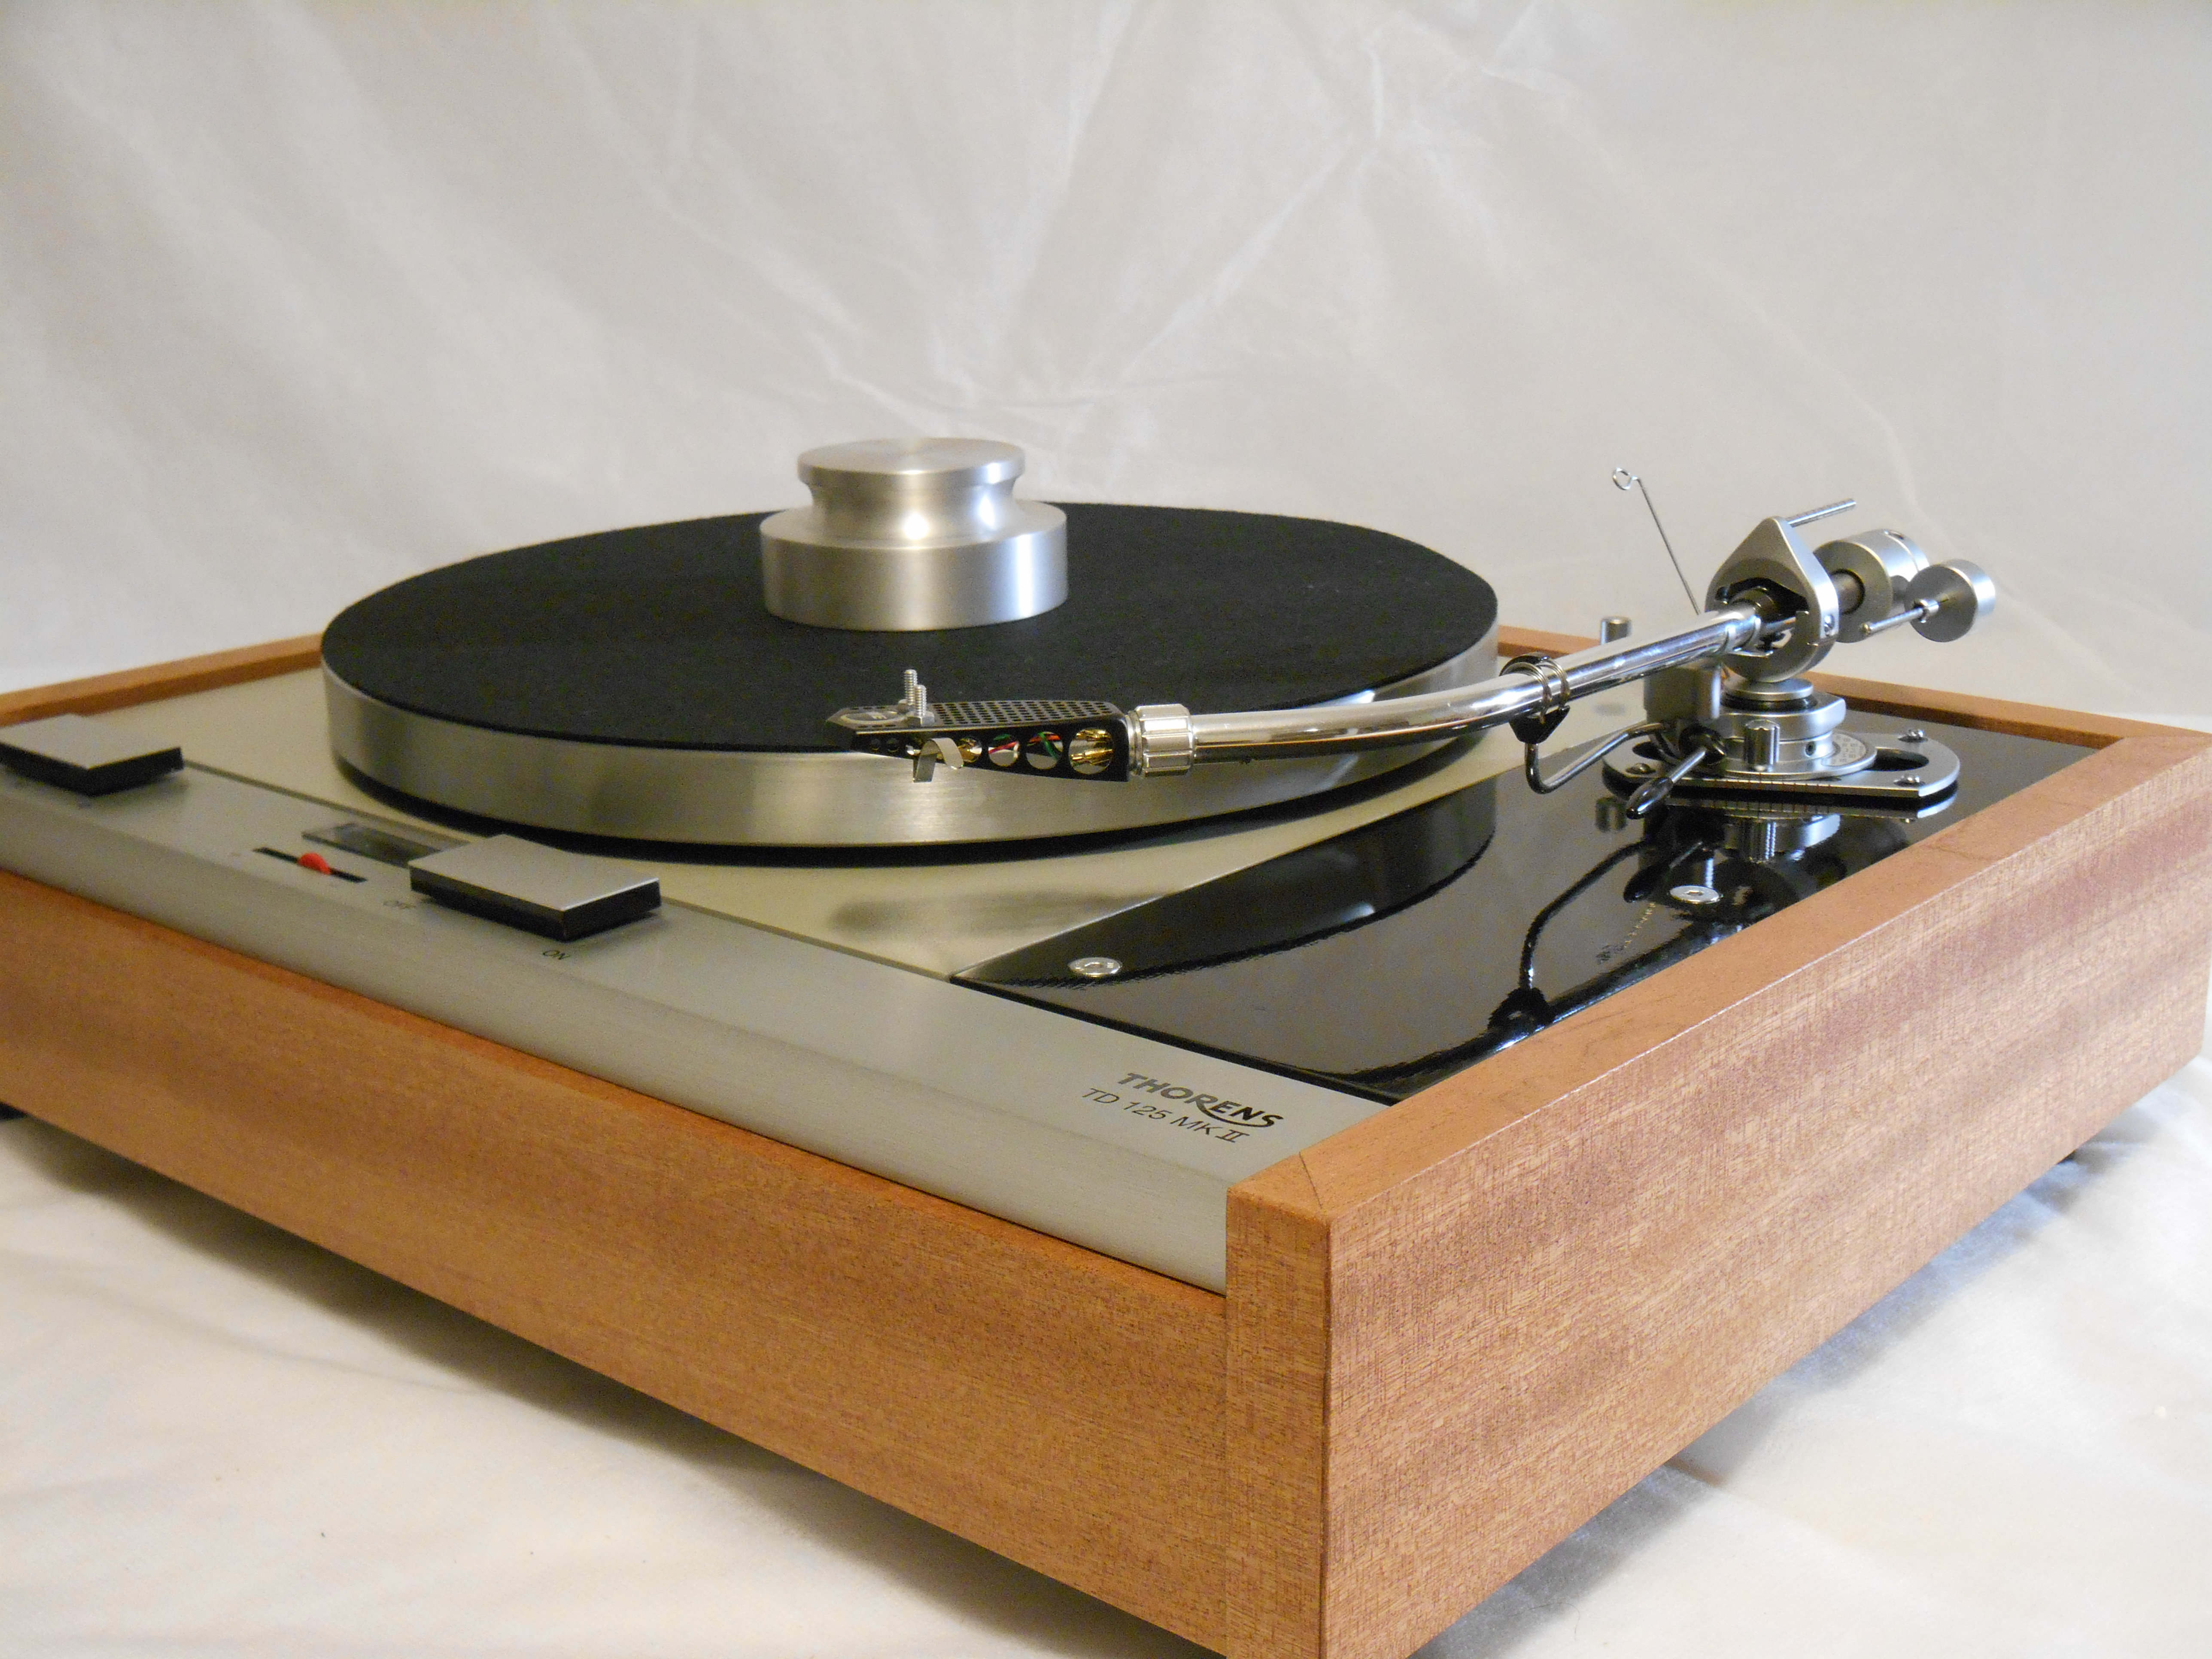 Thorens td 125 Mkii Turntable For Sale Thorens Td-125 Mkii W/rewired